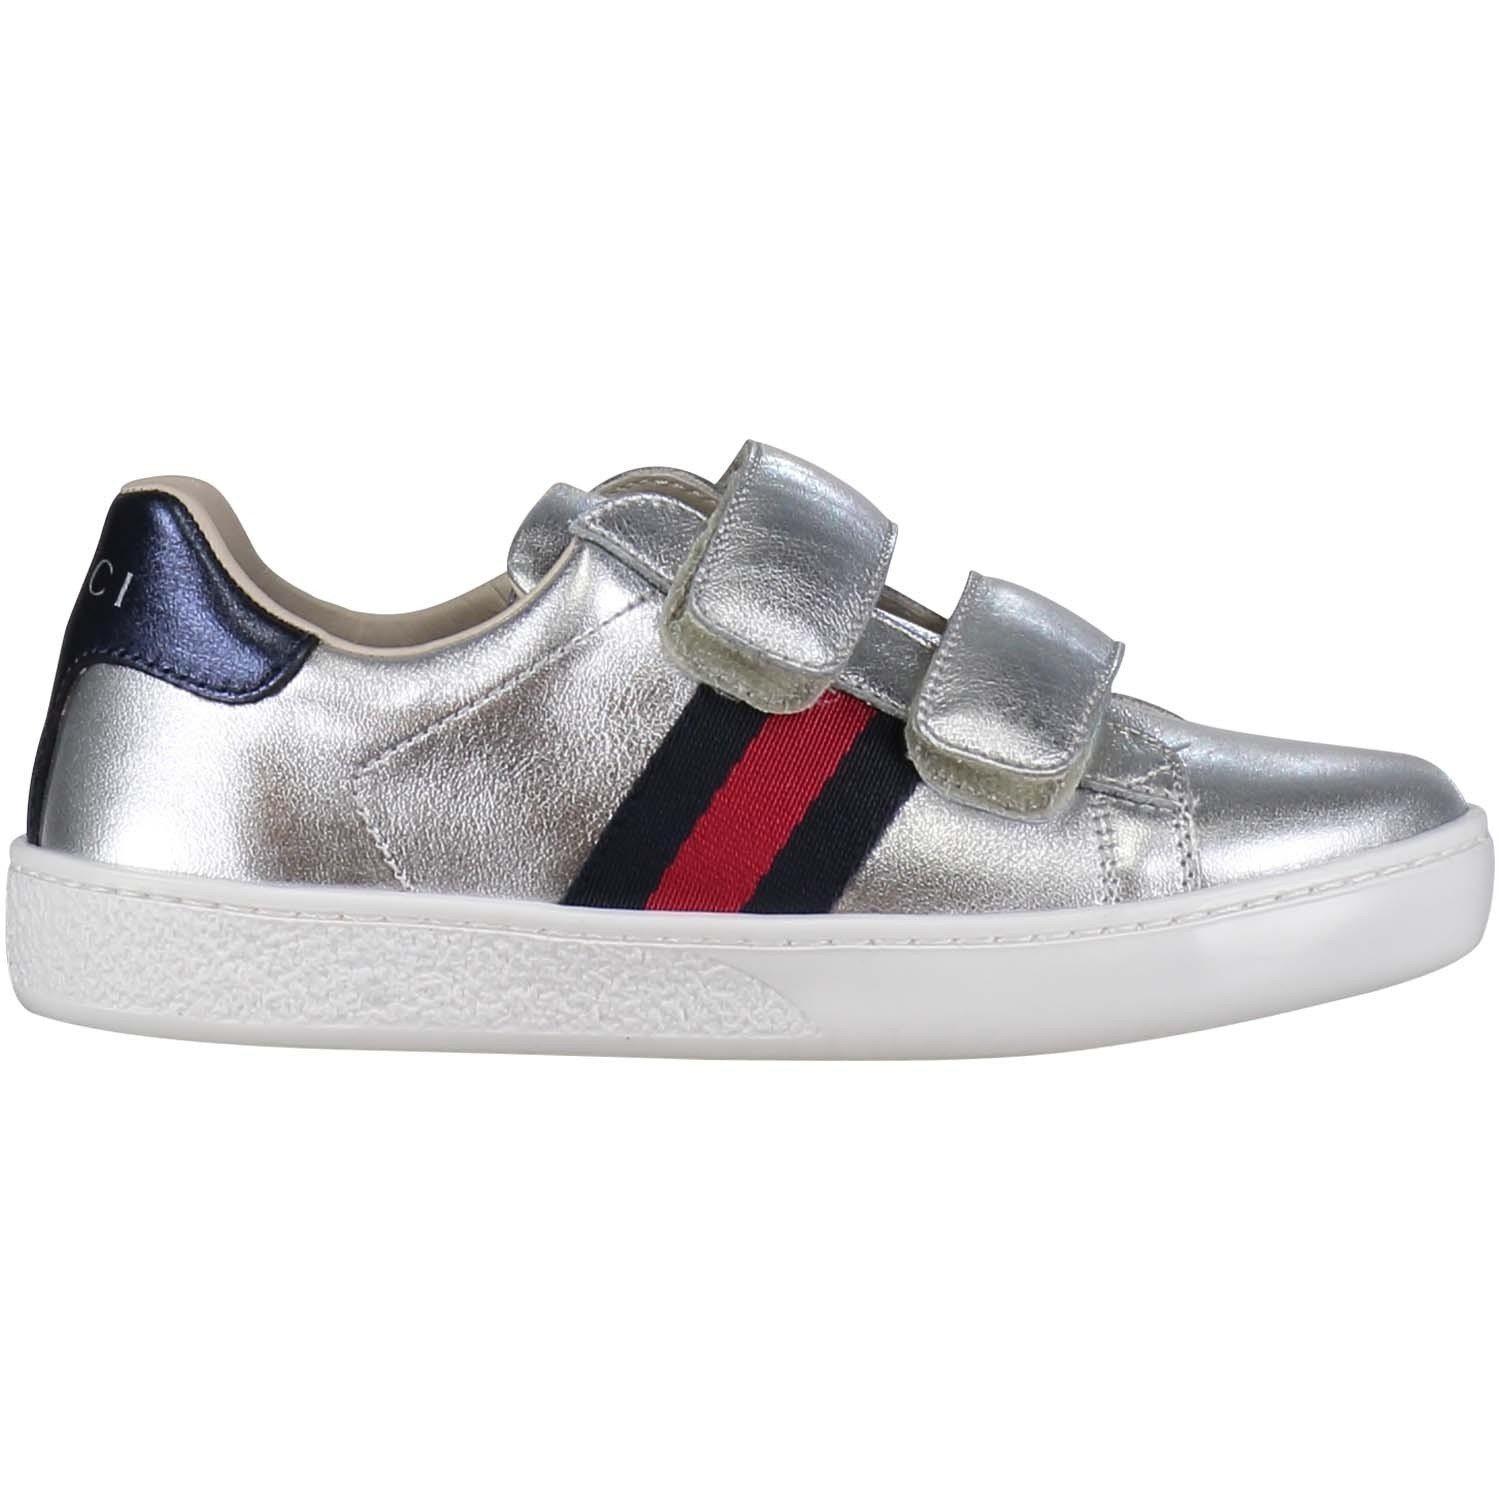 d92cd6b7c Gucci 455448 Dxd60 Girls Silver at Coccinelle